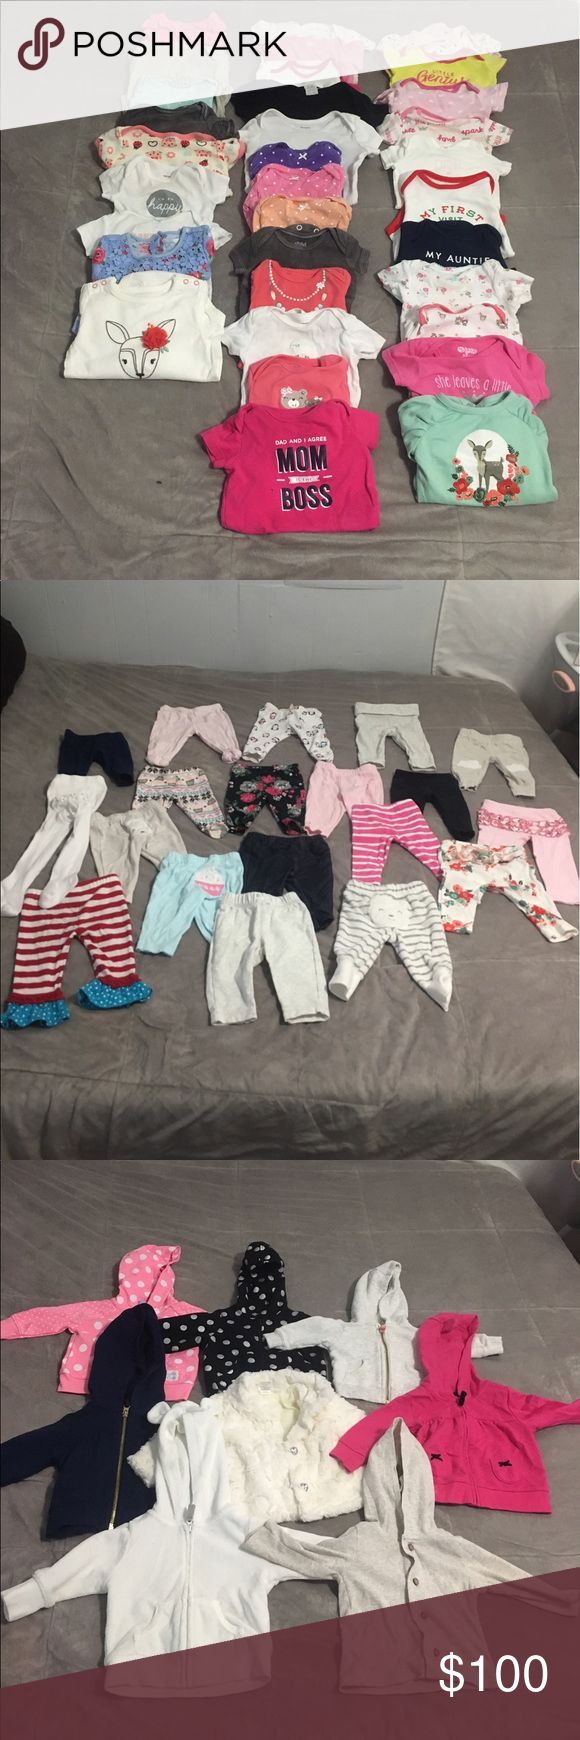 0-3 month baby girl clothes 85 pieces! Sets, jackets, pants, onesies, dresses, footie pjs, pj gowns! Everything is in really good condition except maybe 3 pieces have some light staining around the collar from drool or spit up. Some pieces still have tags attached. Everything is 3 month old except one of the jackets is a nb, and a few of the pjs are a 6mo and a 9mo. My daughter outgrew them before she hit that age. Asking $100 for everything. (I recycle the money to buy her new clothes) One…